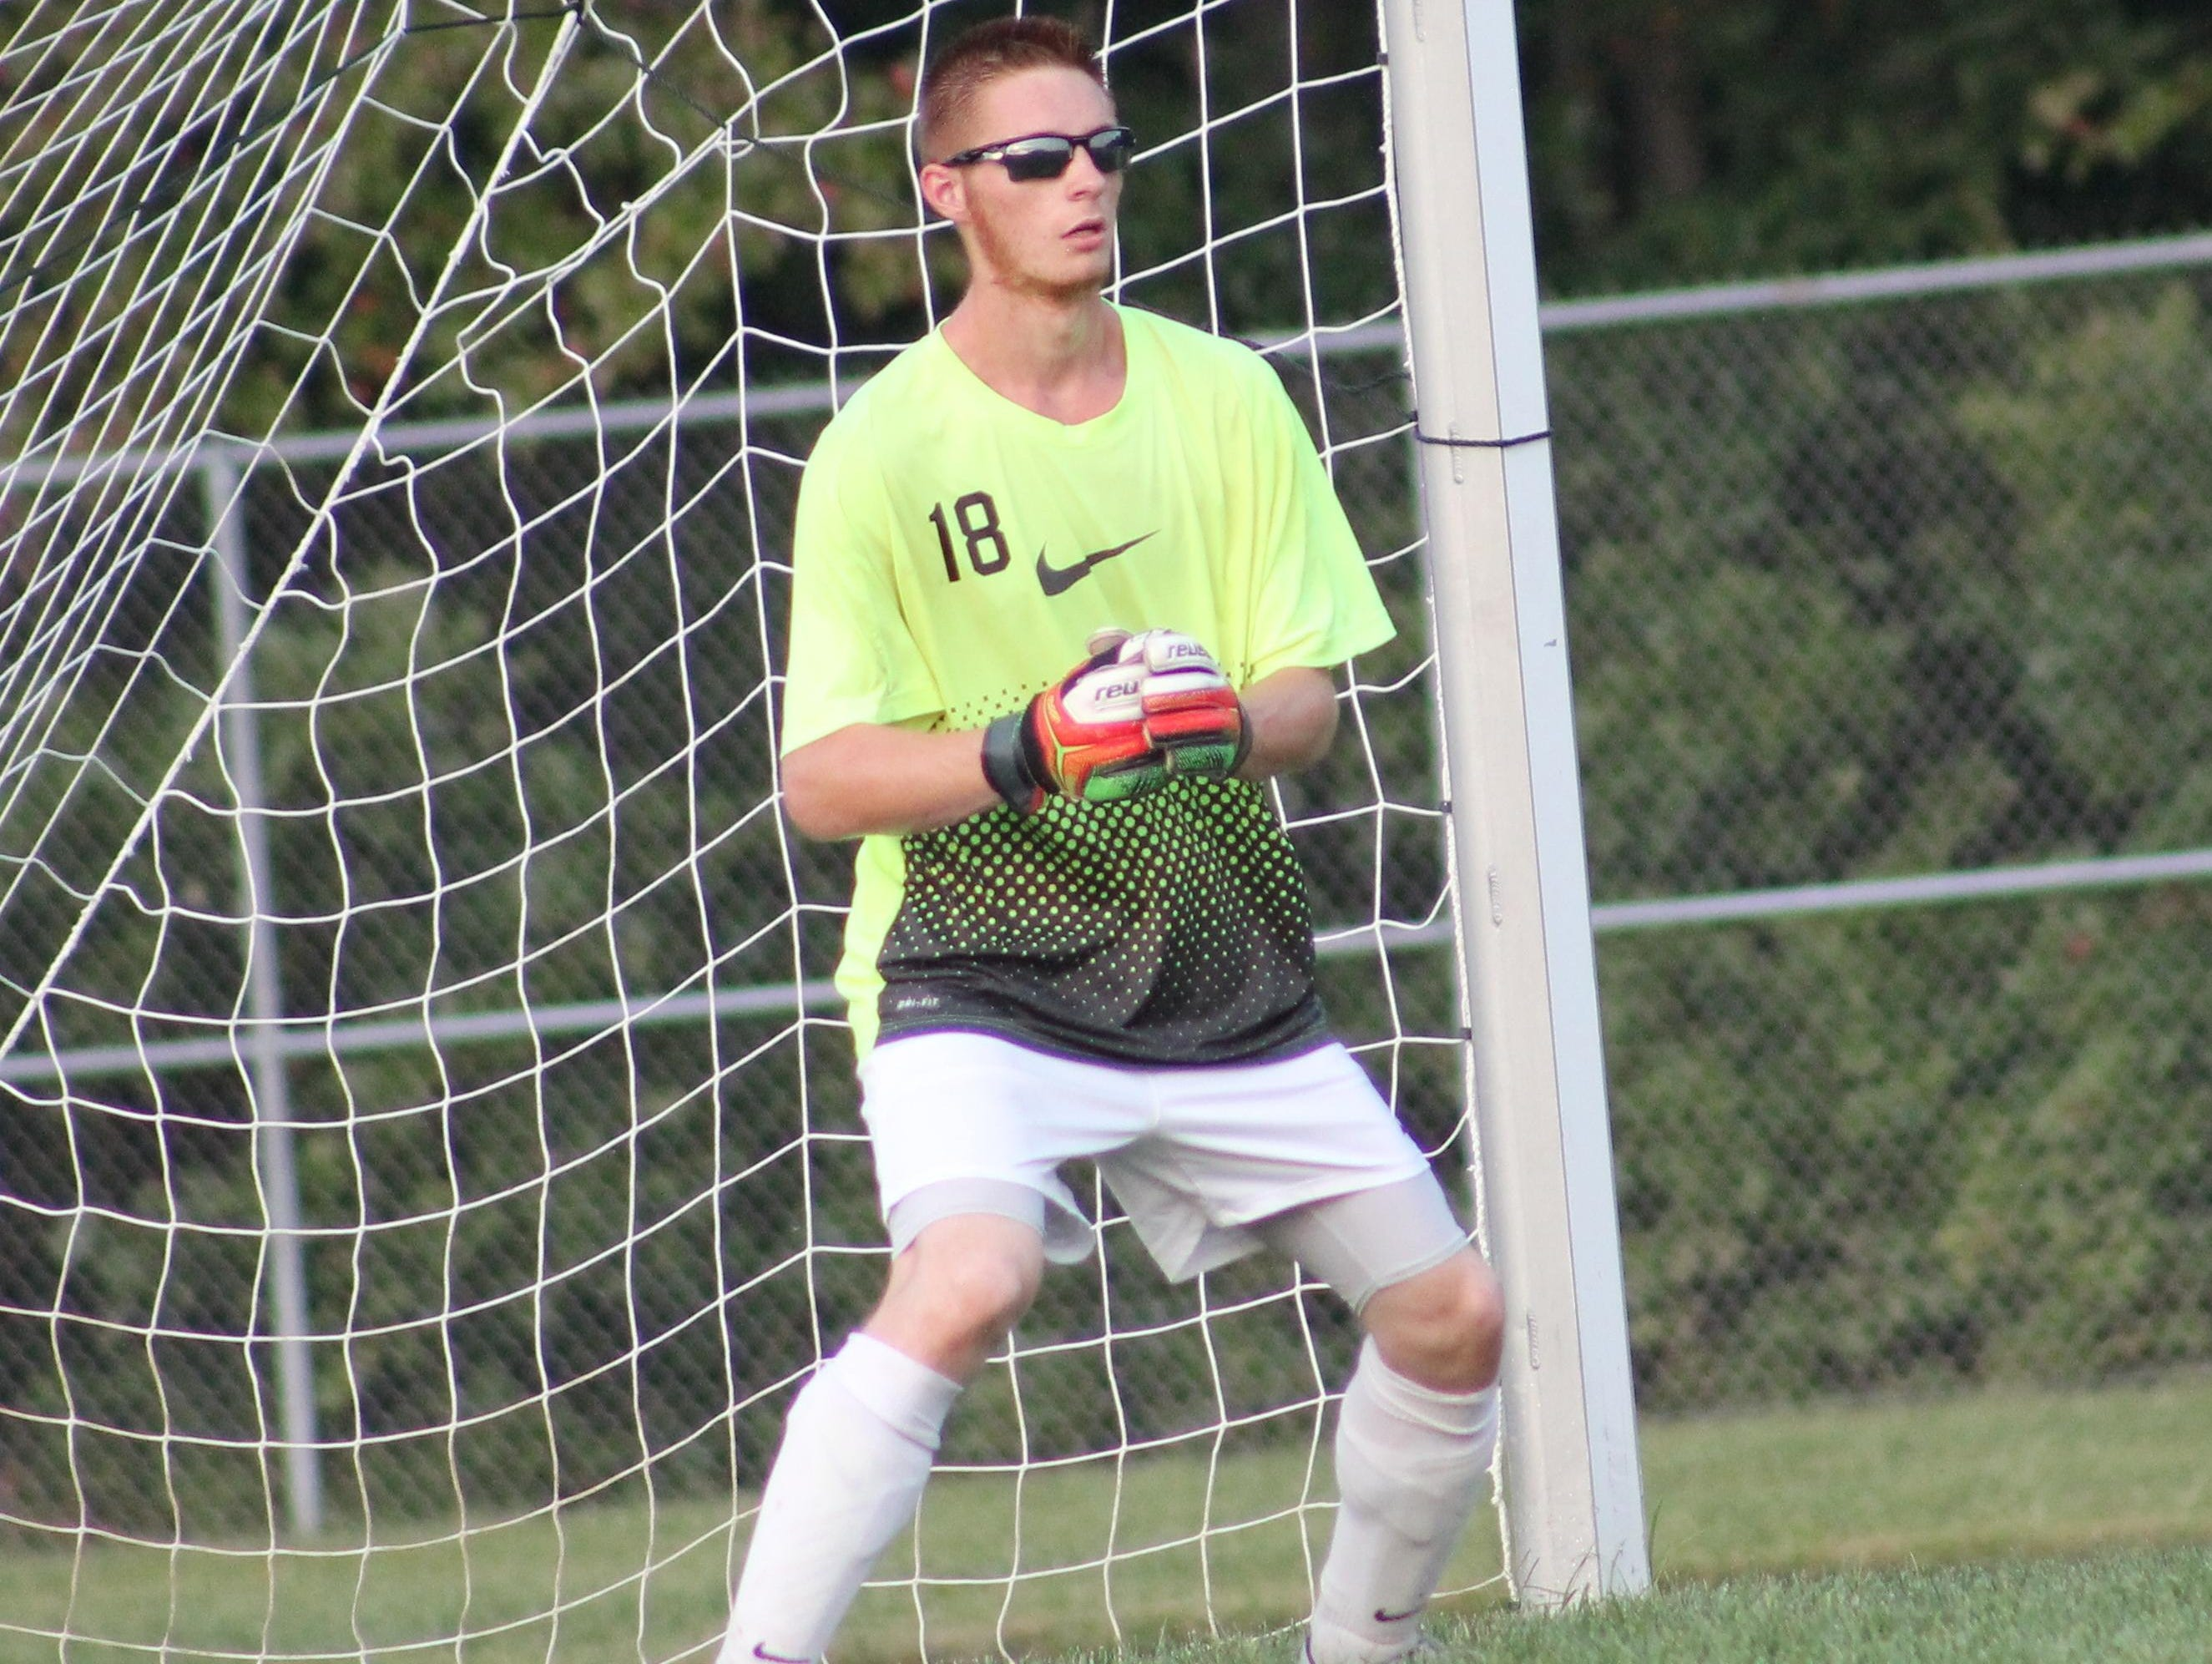 Bethel-Tate's Ian Kimmerly mans the goal during the Tigers' 1-1 tie with Blanchester Thursday.